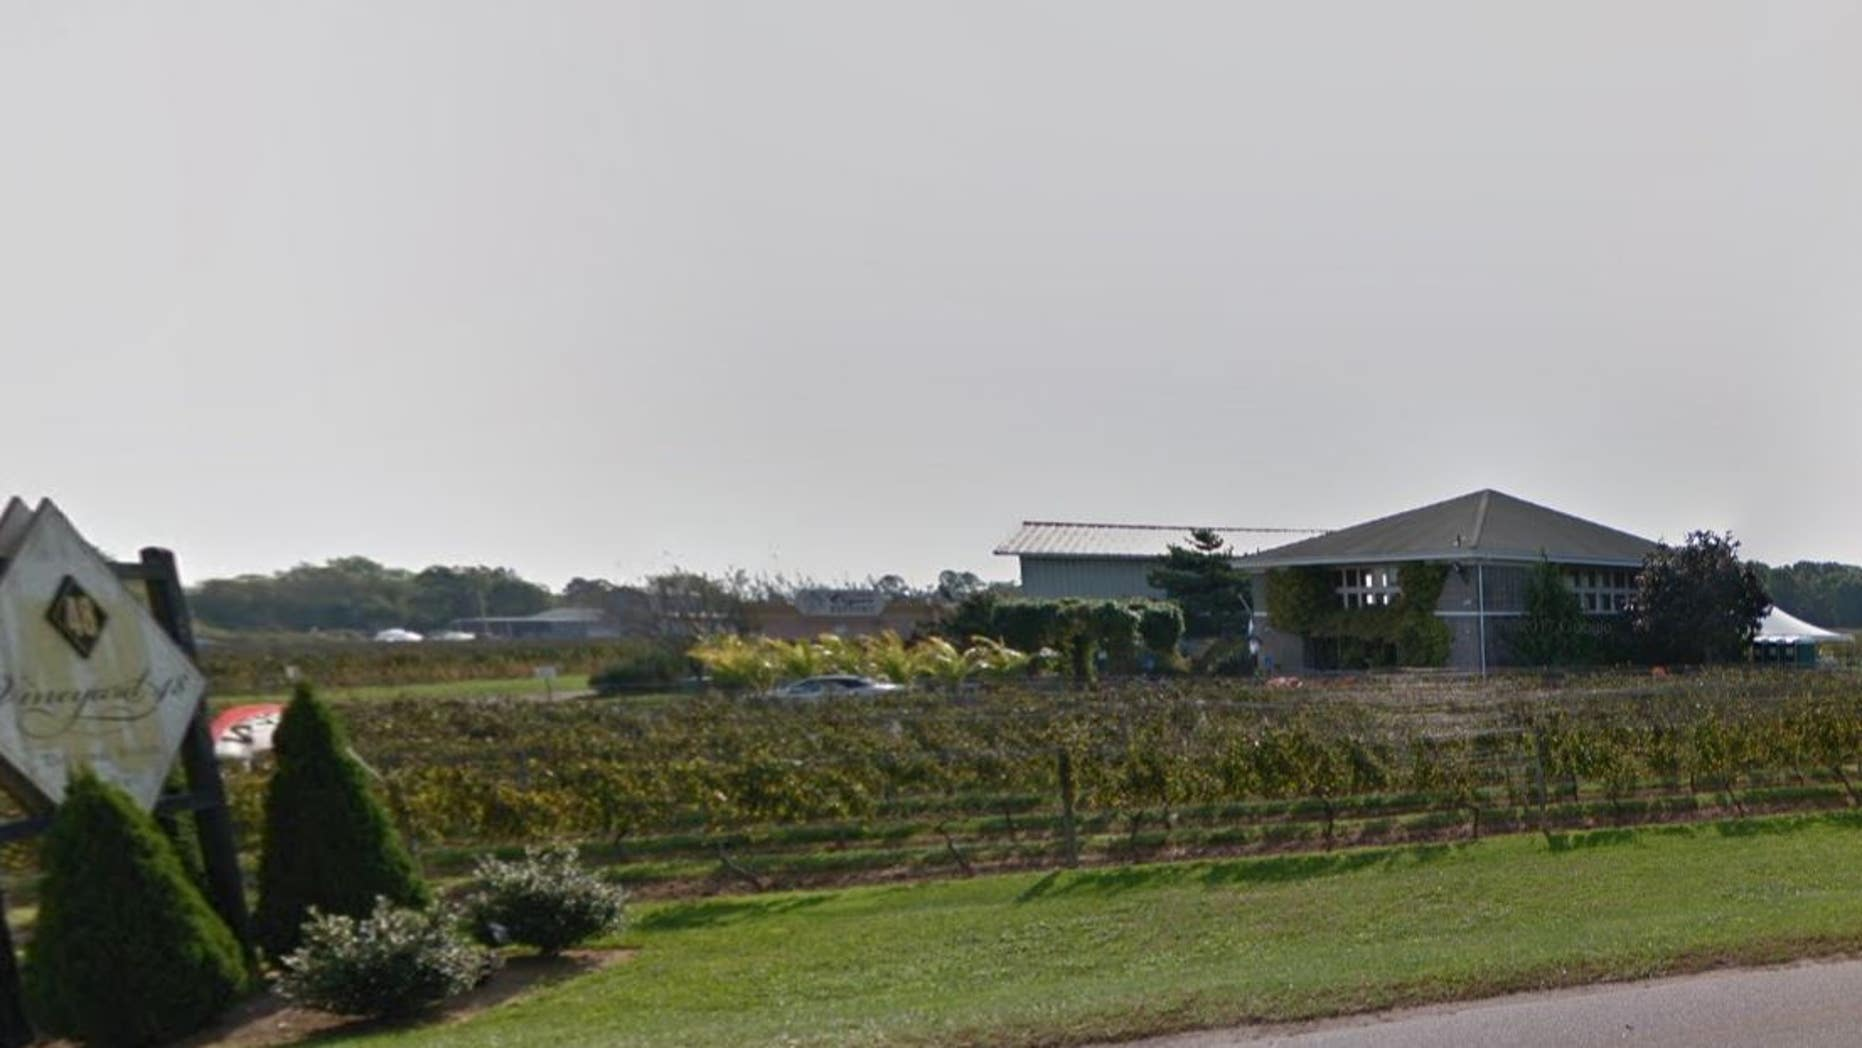 New York winery shuts down after wild sex parties, poop antics cost  business its liquor license